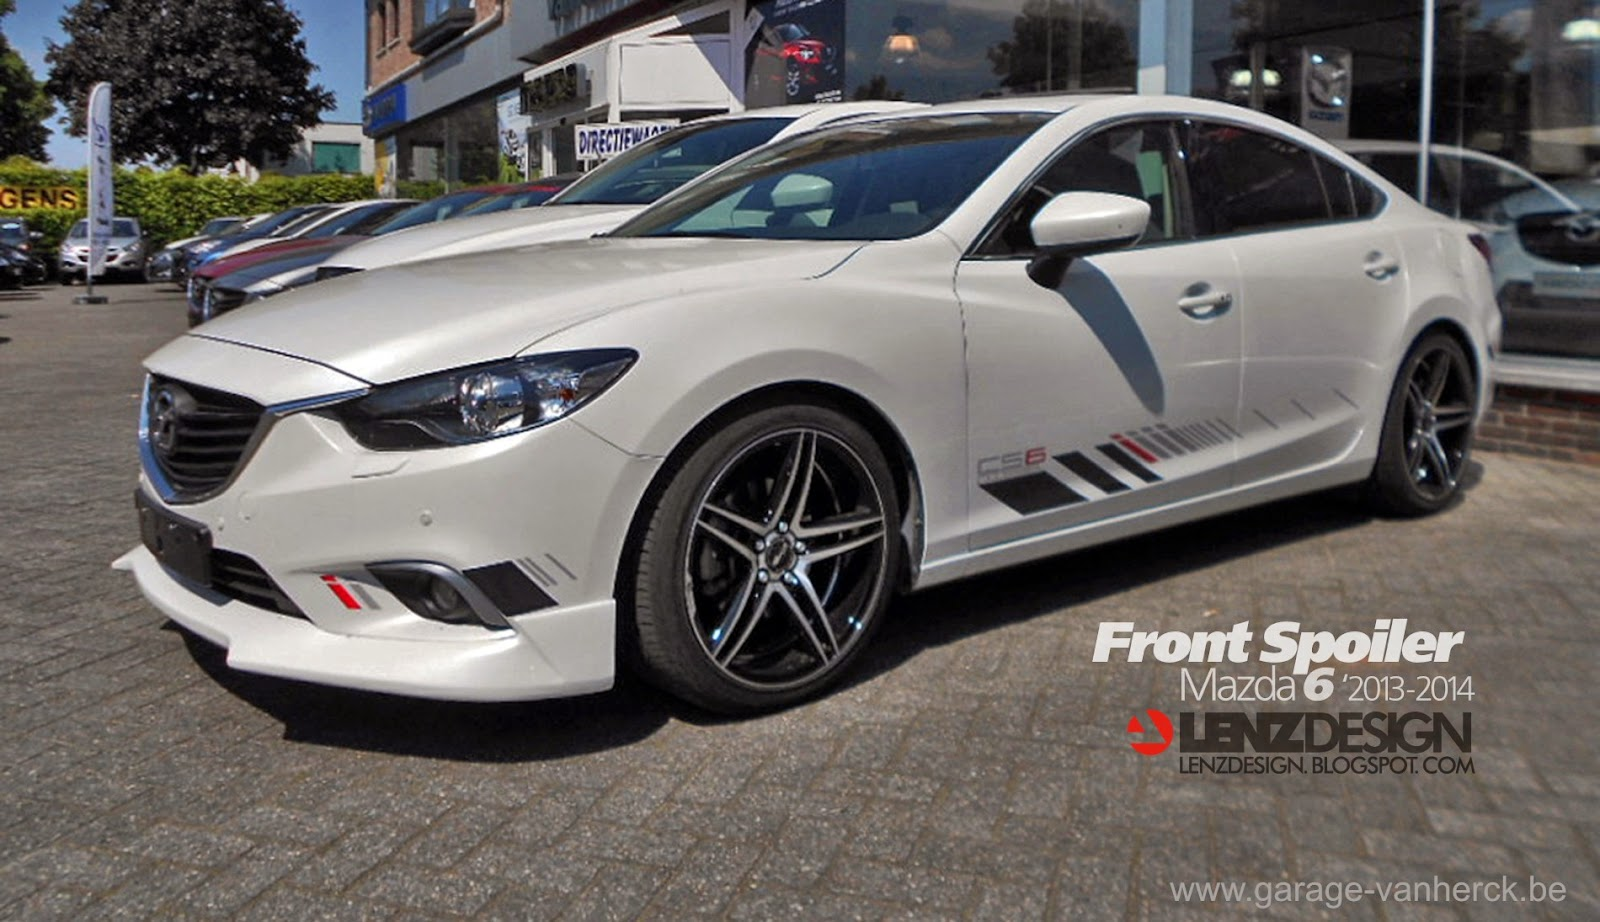 Mazda 6 2013 Tuning Body Kit Lenzdesign Performance